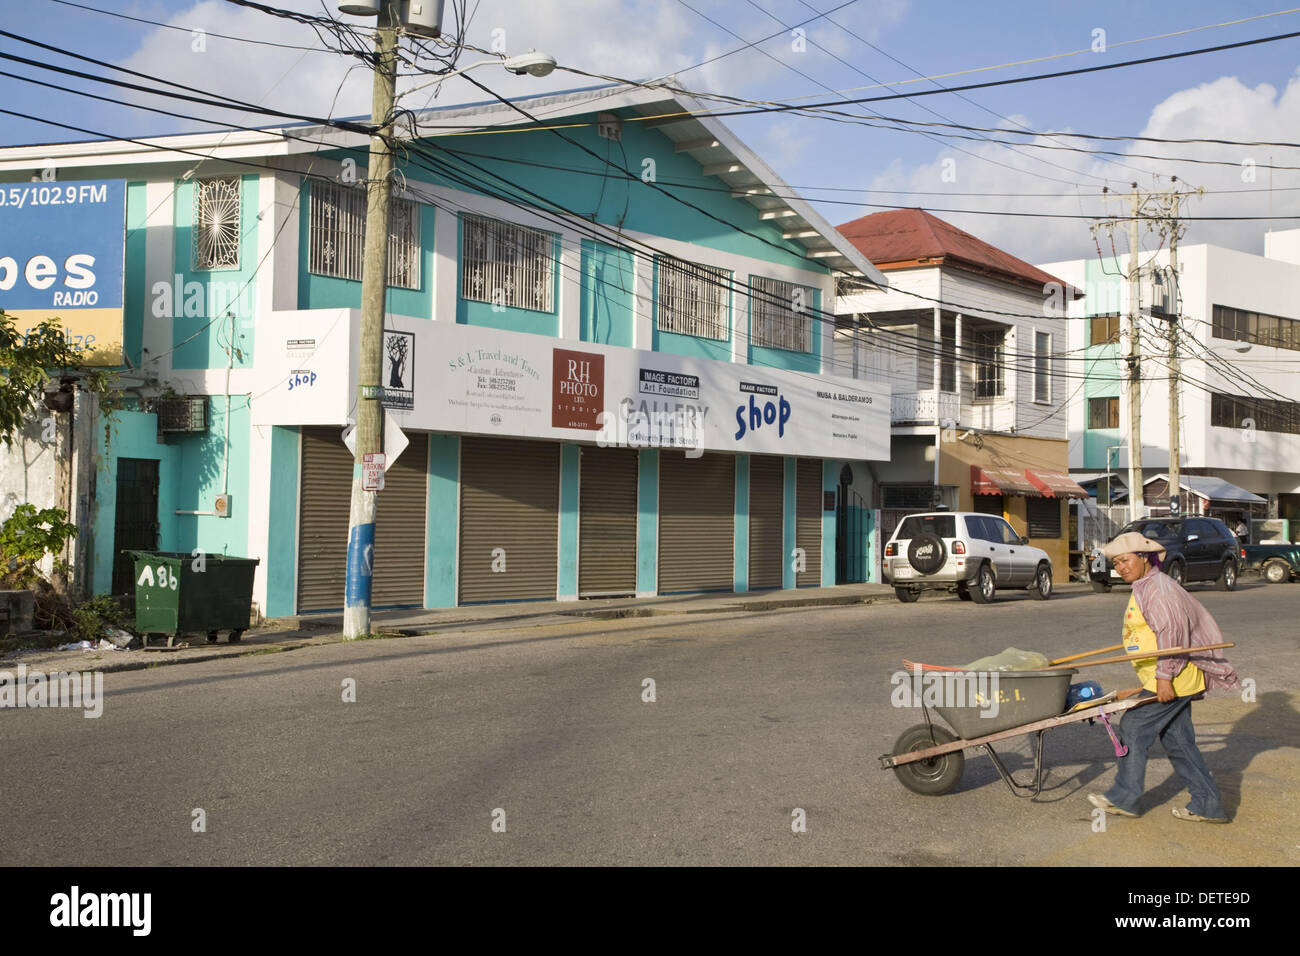 Lady street cleaner walks across road towards the Image Factory art foundation, Fort George District, Belize City, Belize - Stock Image